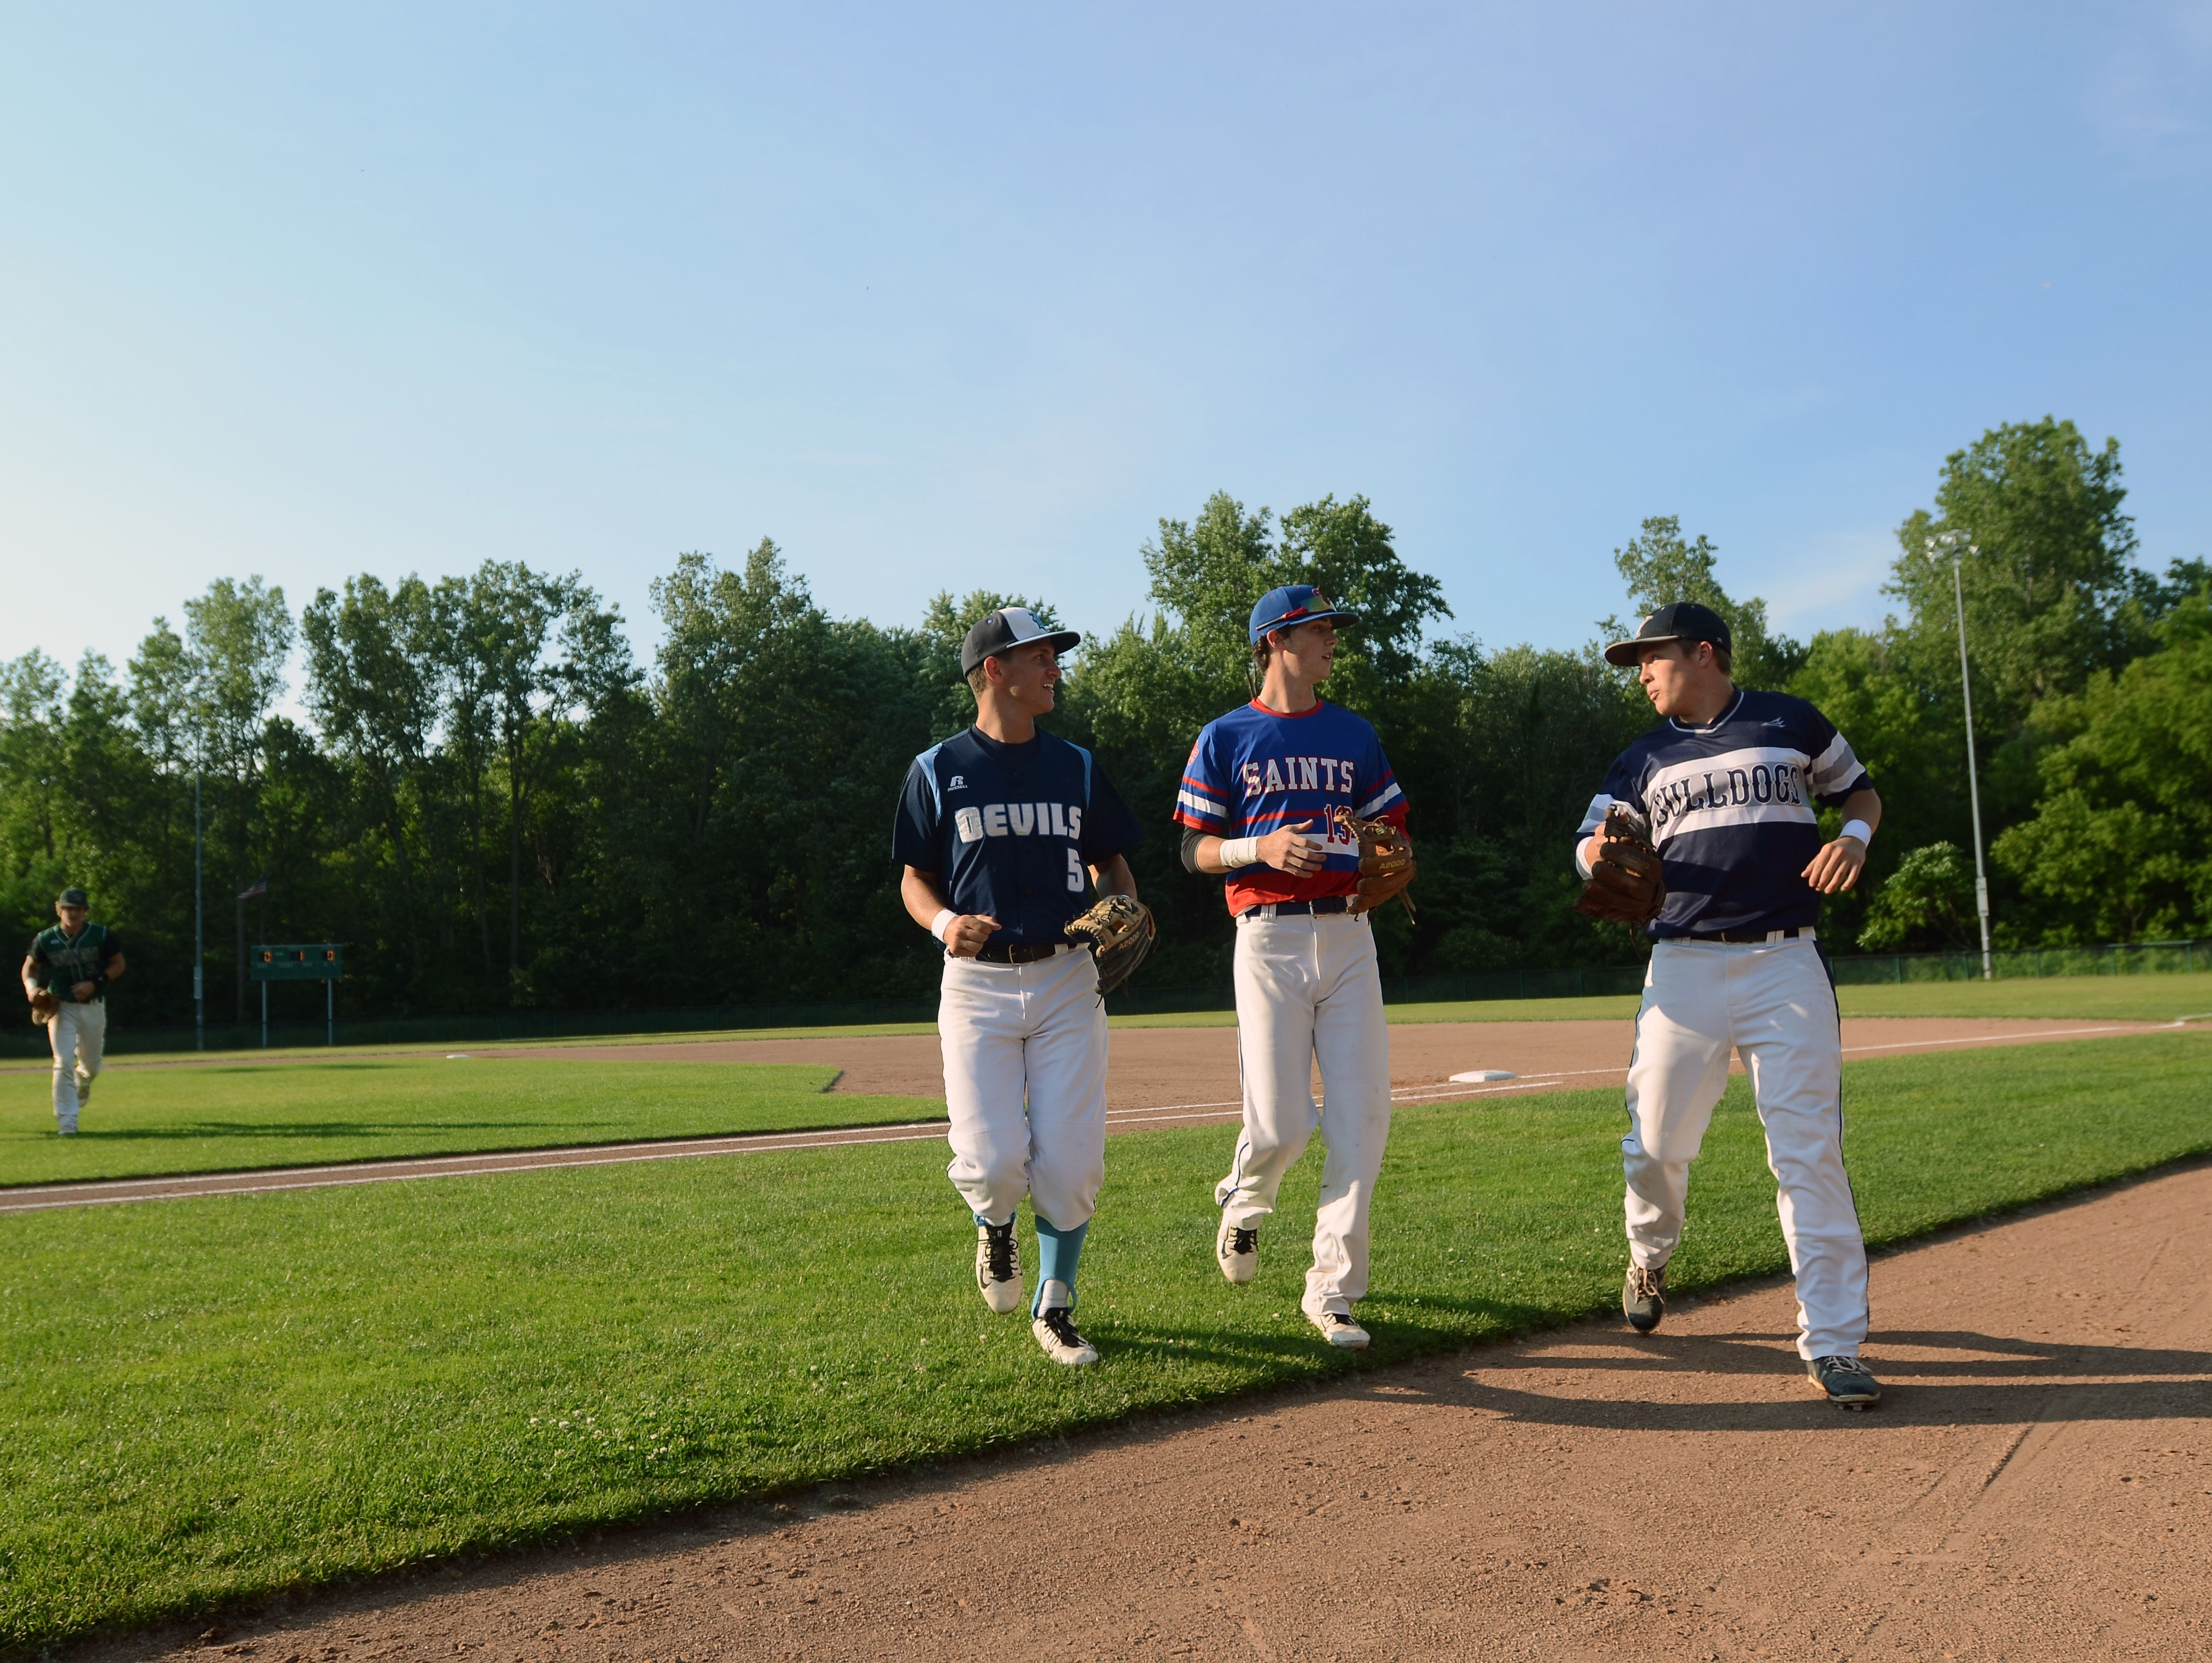 Richmonds' Matt Skoryanc chats with St. Clairs' Brendan Marino and Yales' Kyle Avery Monday, June 19, during the SC4 Blue Water Area All-Star Game at Sanborn Park.